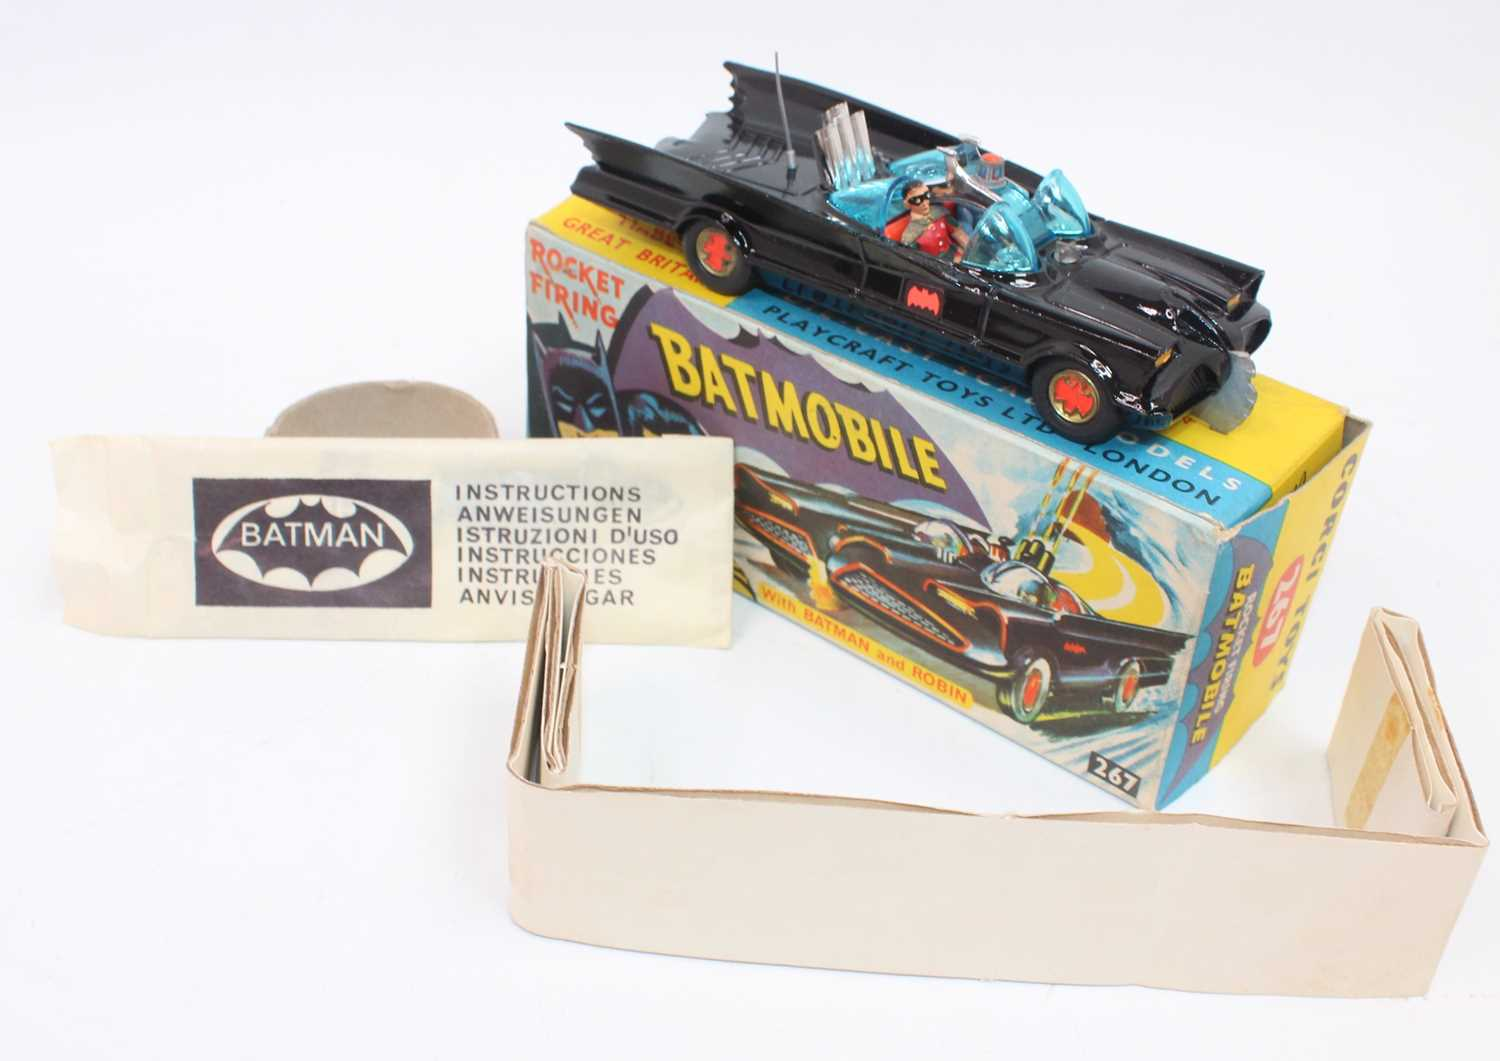 A Corgi Toys 1st issue 267 Batmobile without toe hook in gloss black body 'Bat' logo on doors, - Image 3 of 3